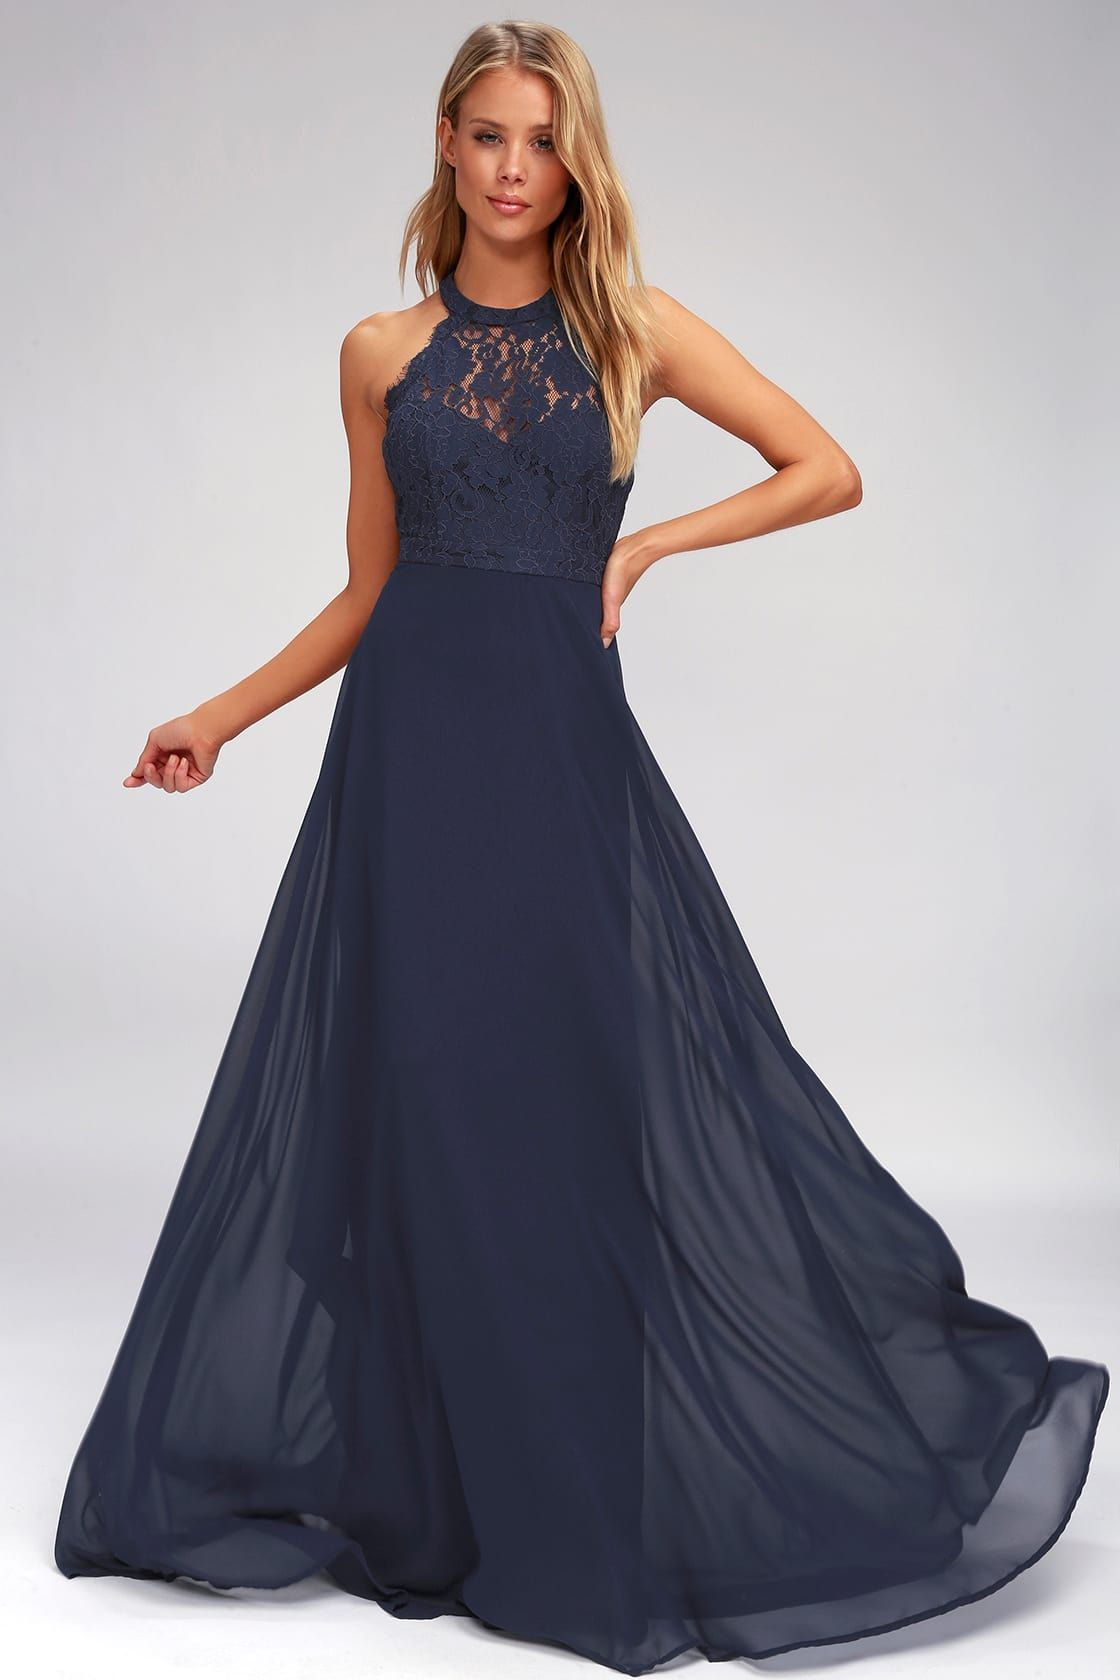 dance all evening navy blue lace maxi dress in 2020